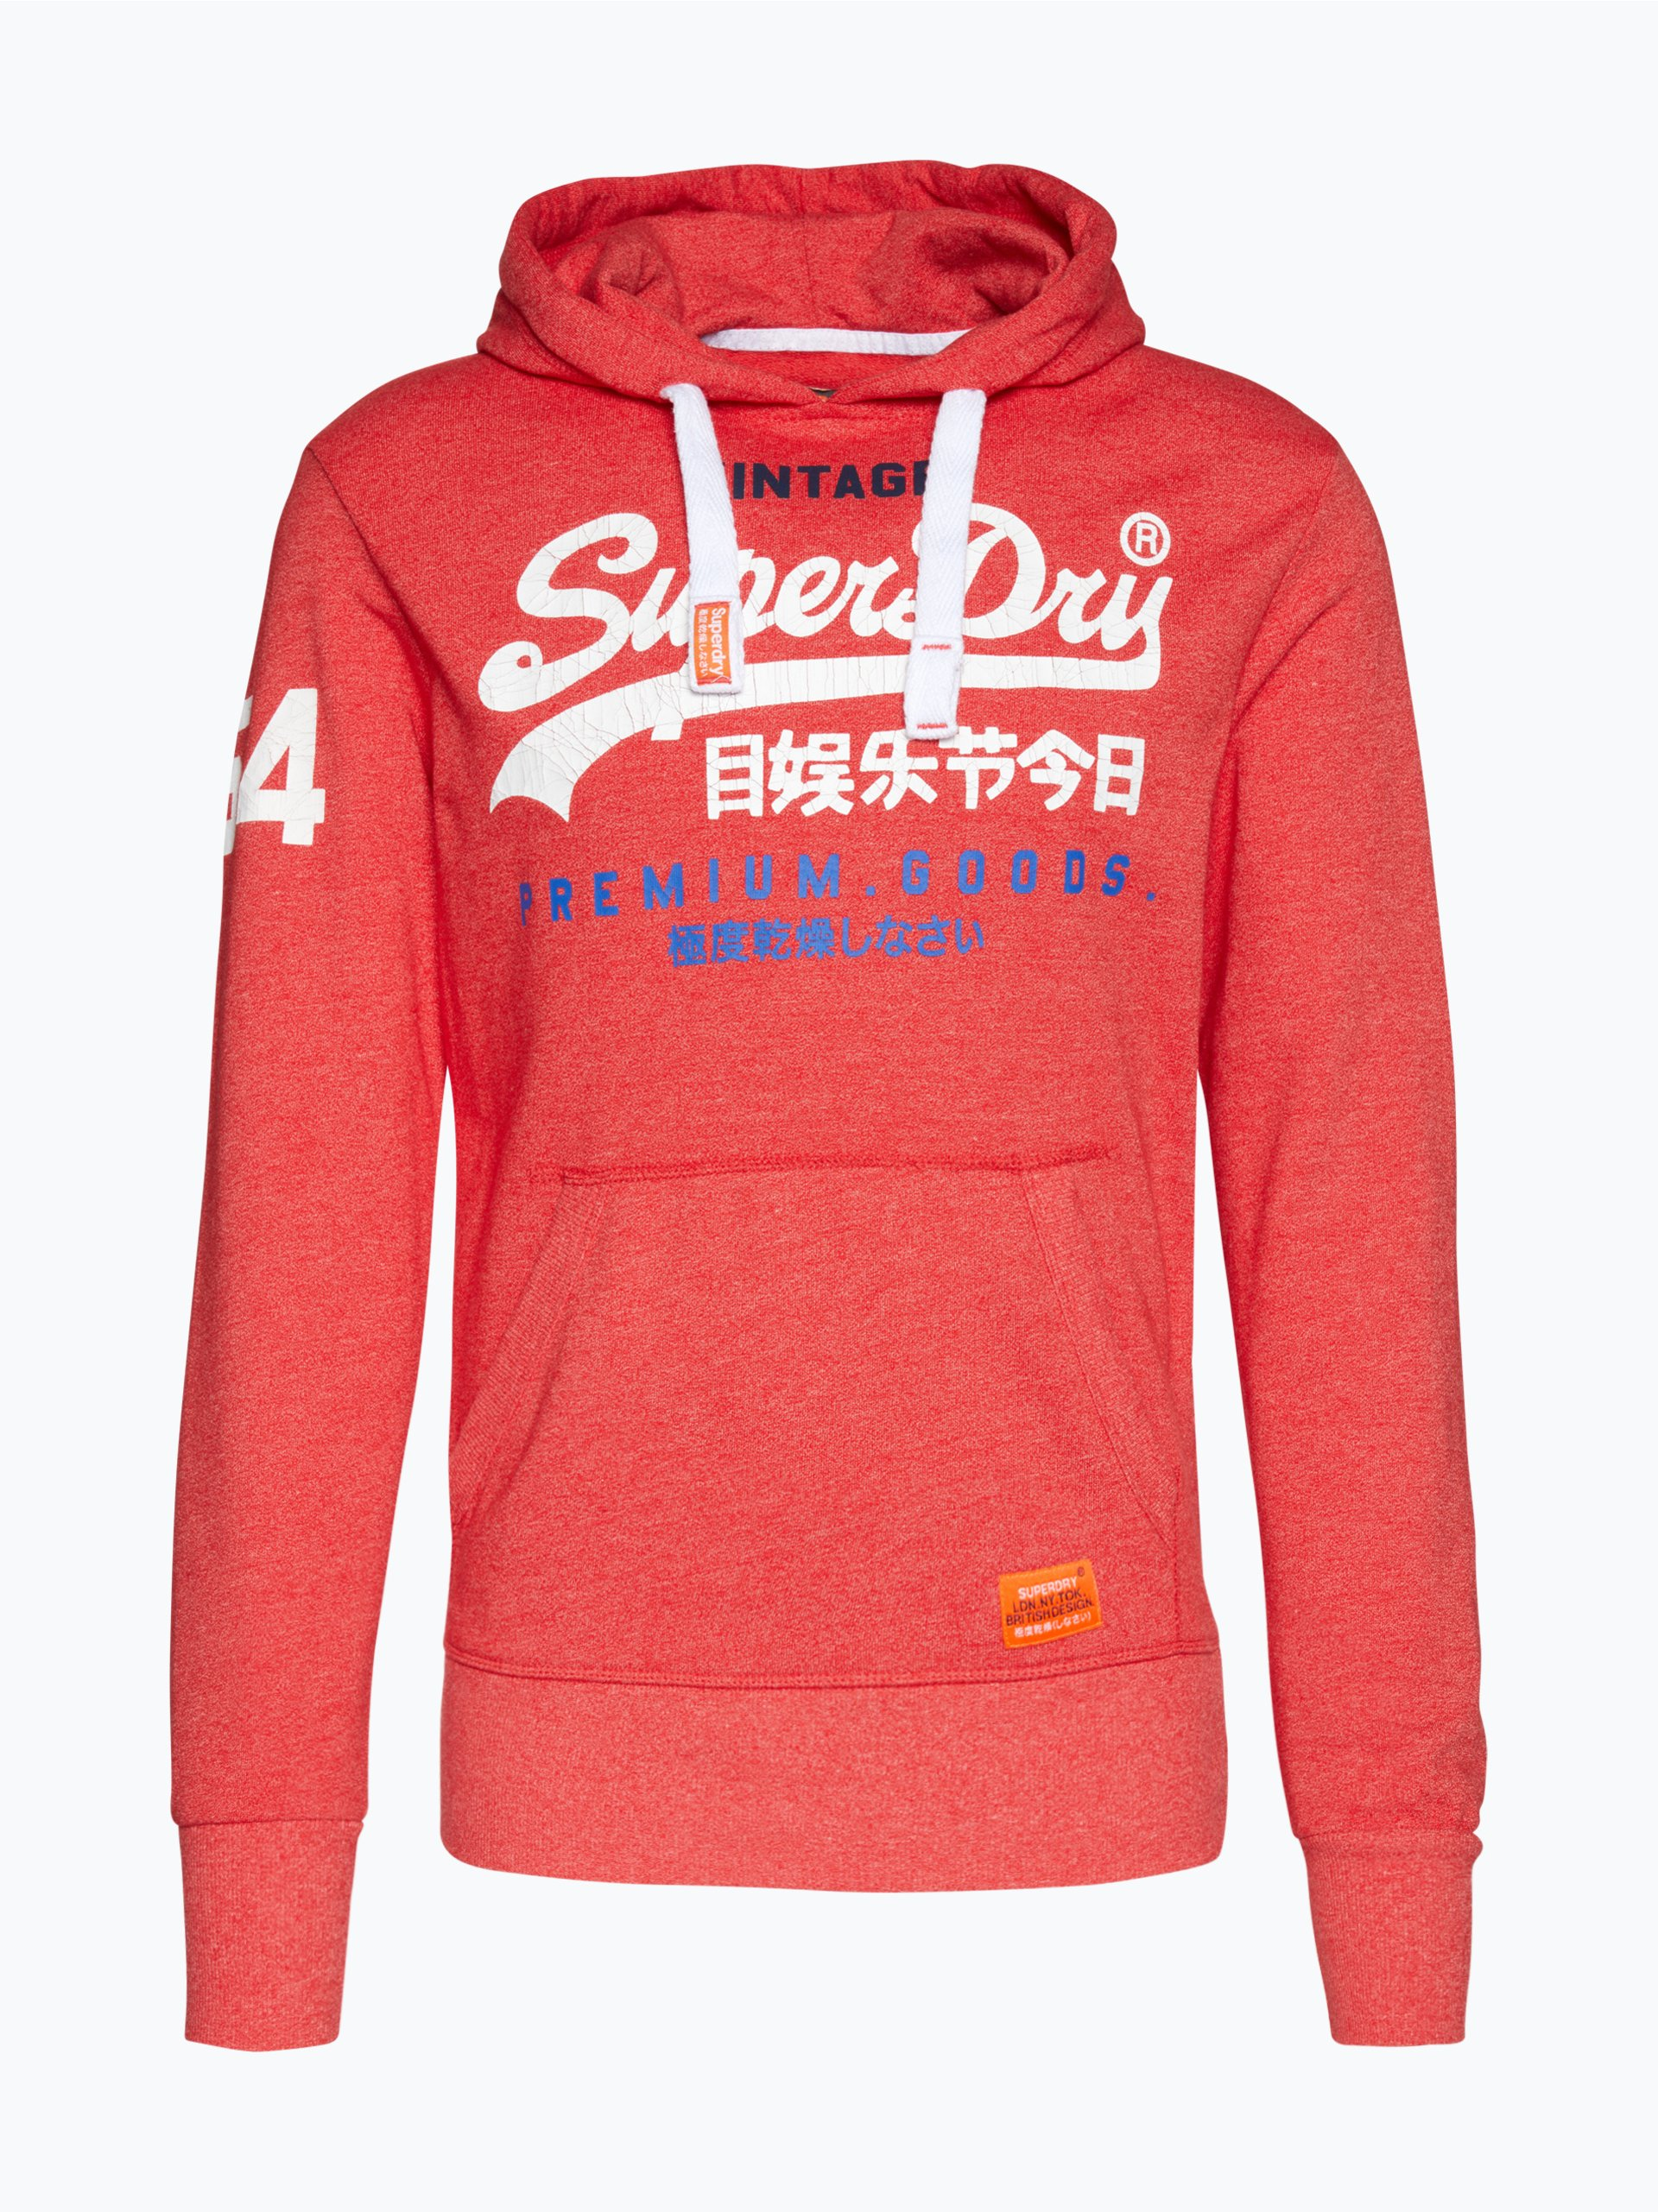 superdry herren sweatshirt rot uni online kaufen peek. Black Bedroom Furniture Sets. Home Design Ideas